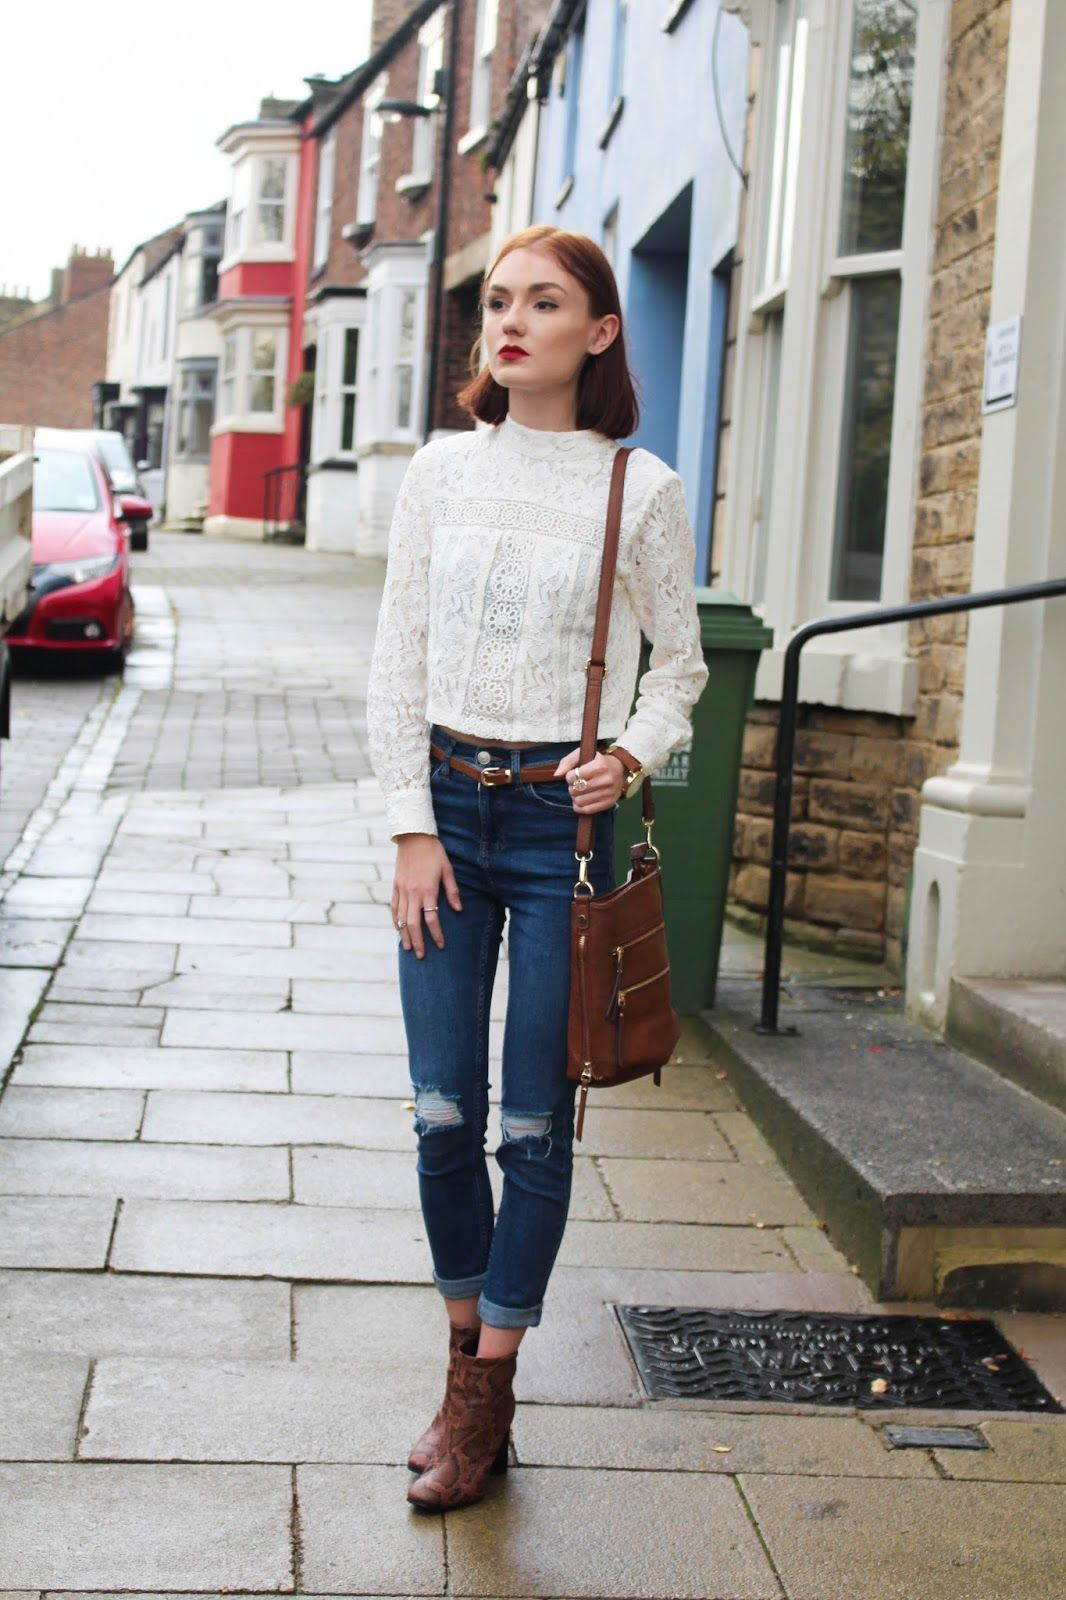 Outfits To Be Fashionable In College - Dressizer